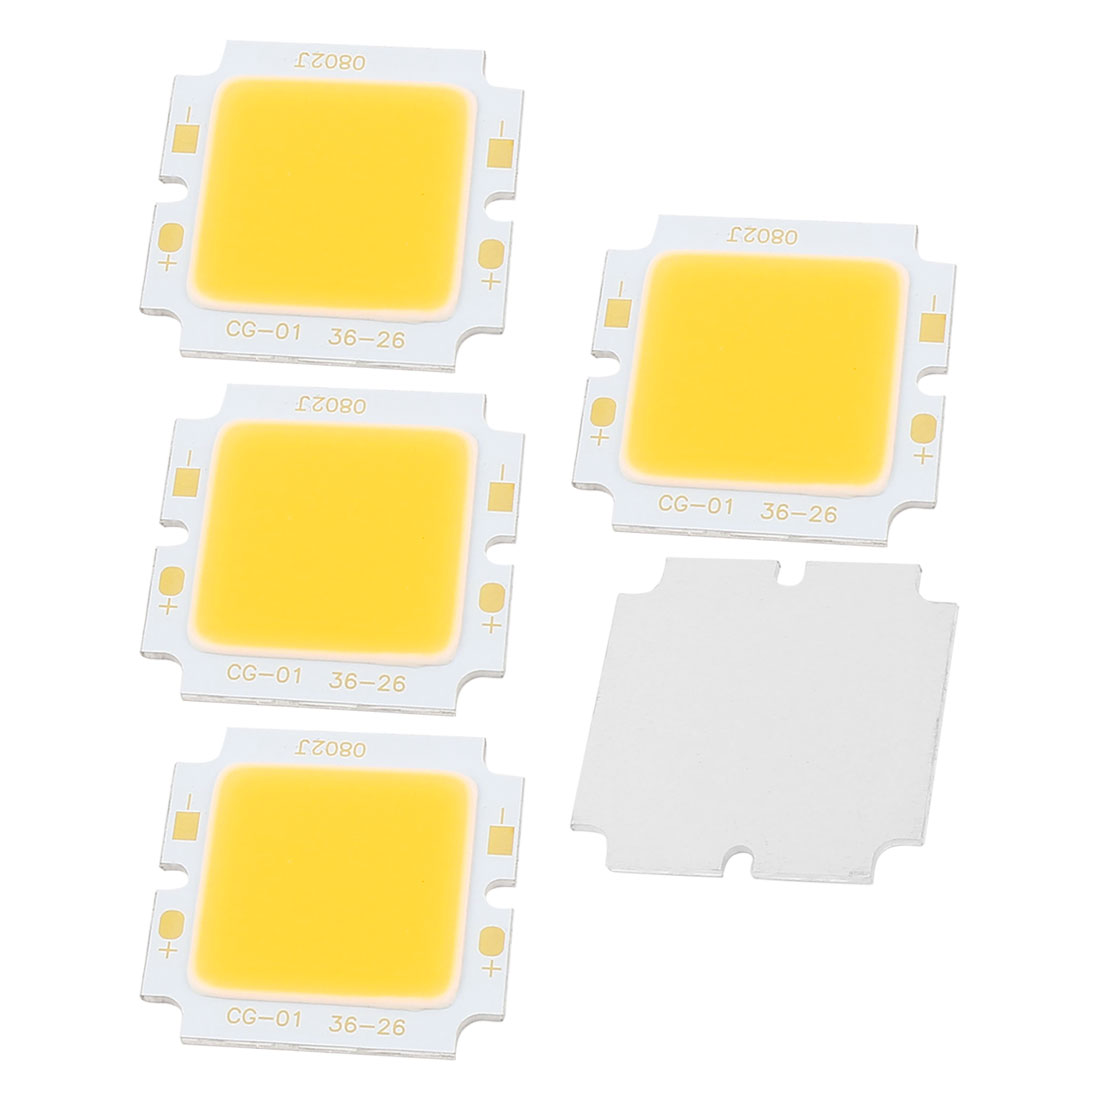 5PCS 8W DC24-30V 300mA 80-90LM/W Warm White LED Light COB Lamp Bead Chip